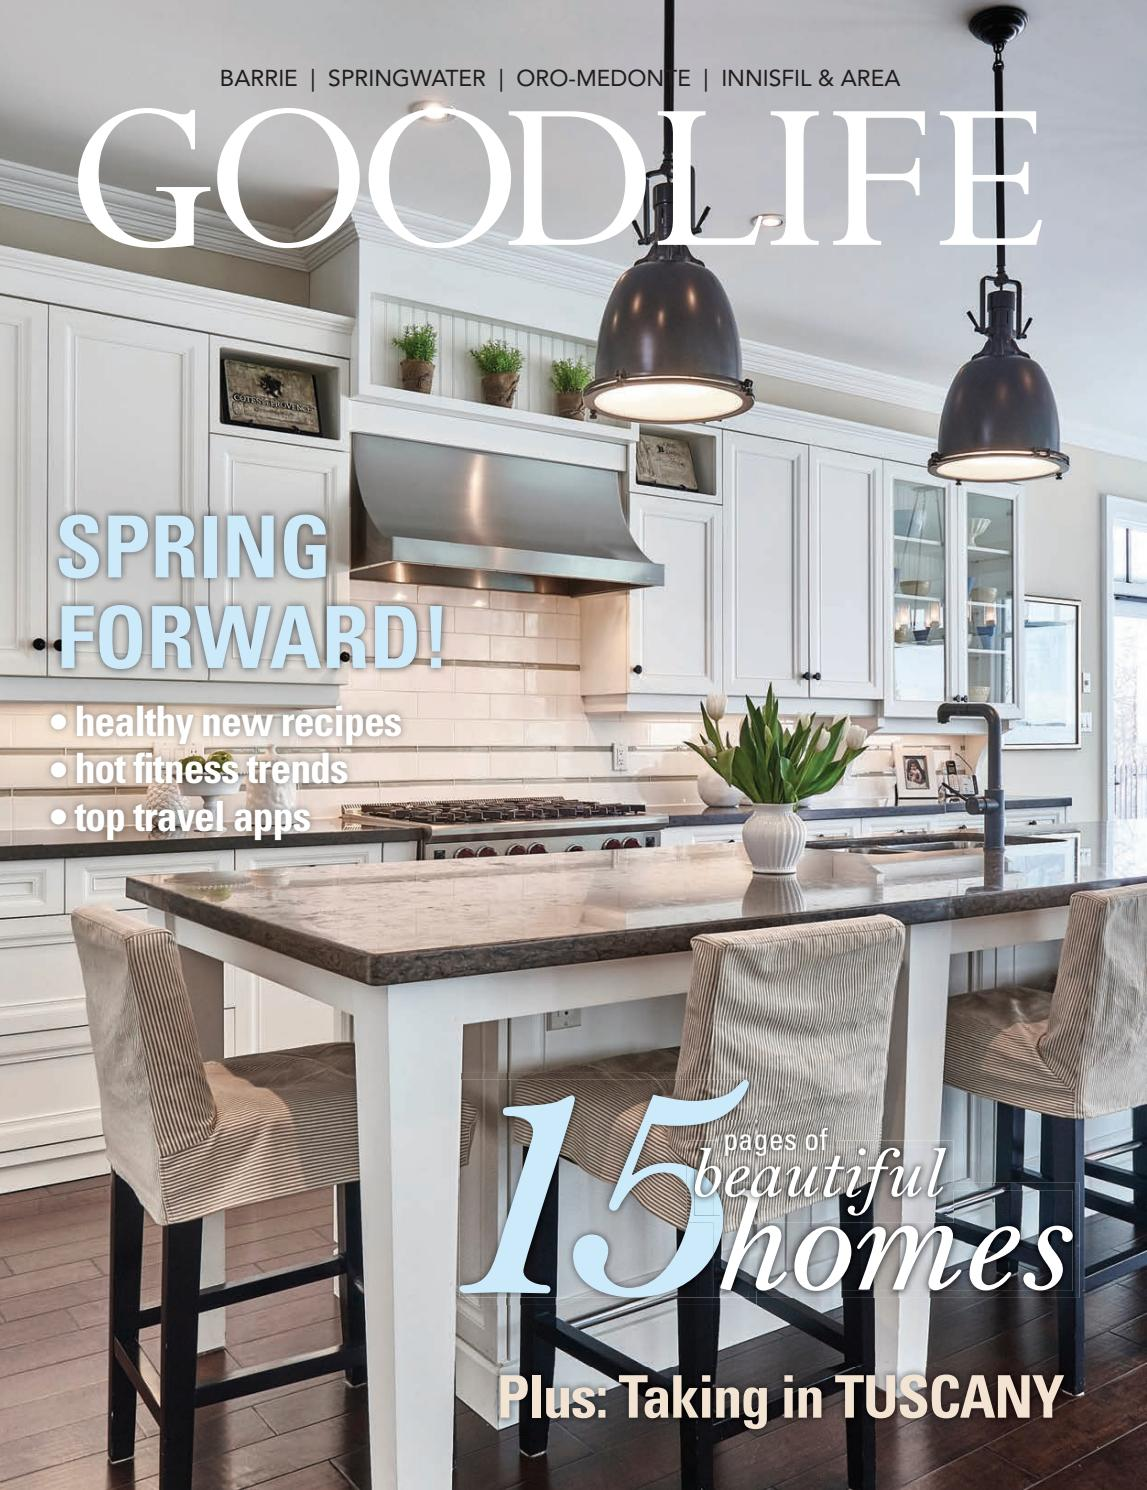 Goodlife barrie march april 2017 by goodlife magazine simcoe county issuu